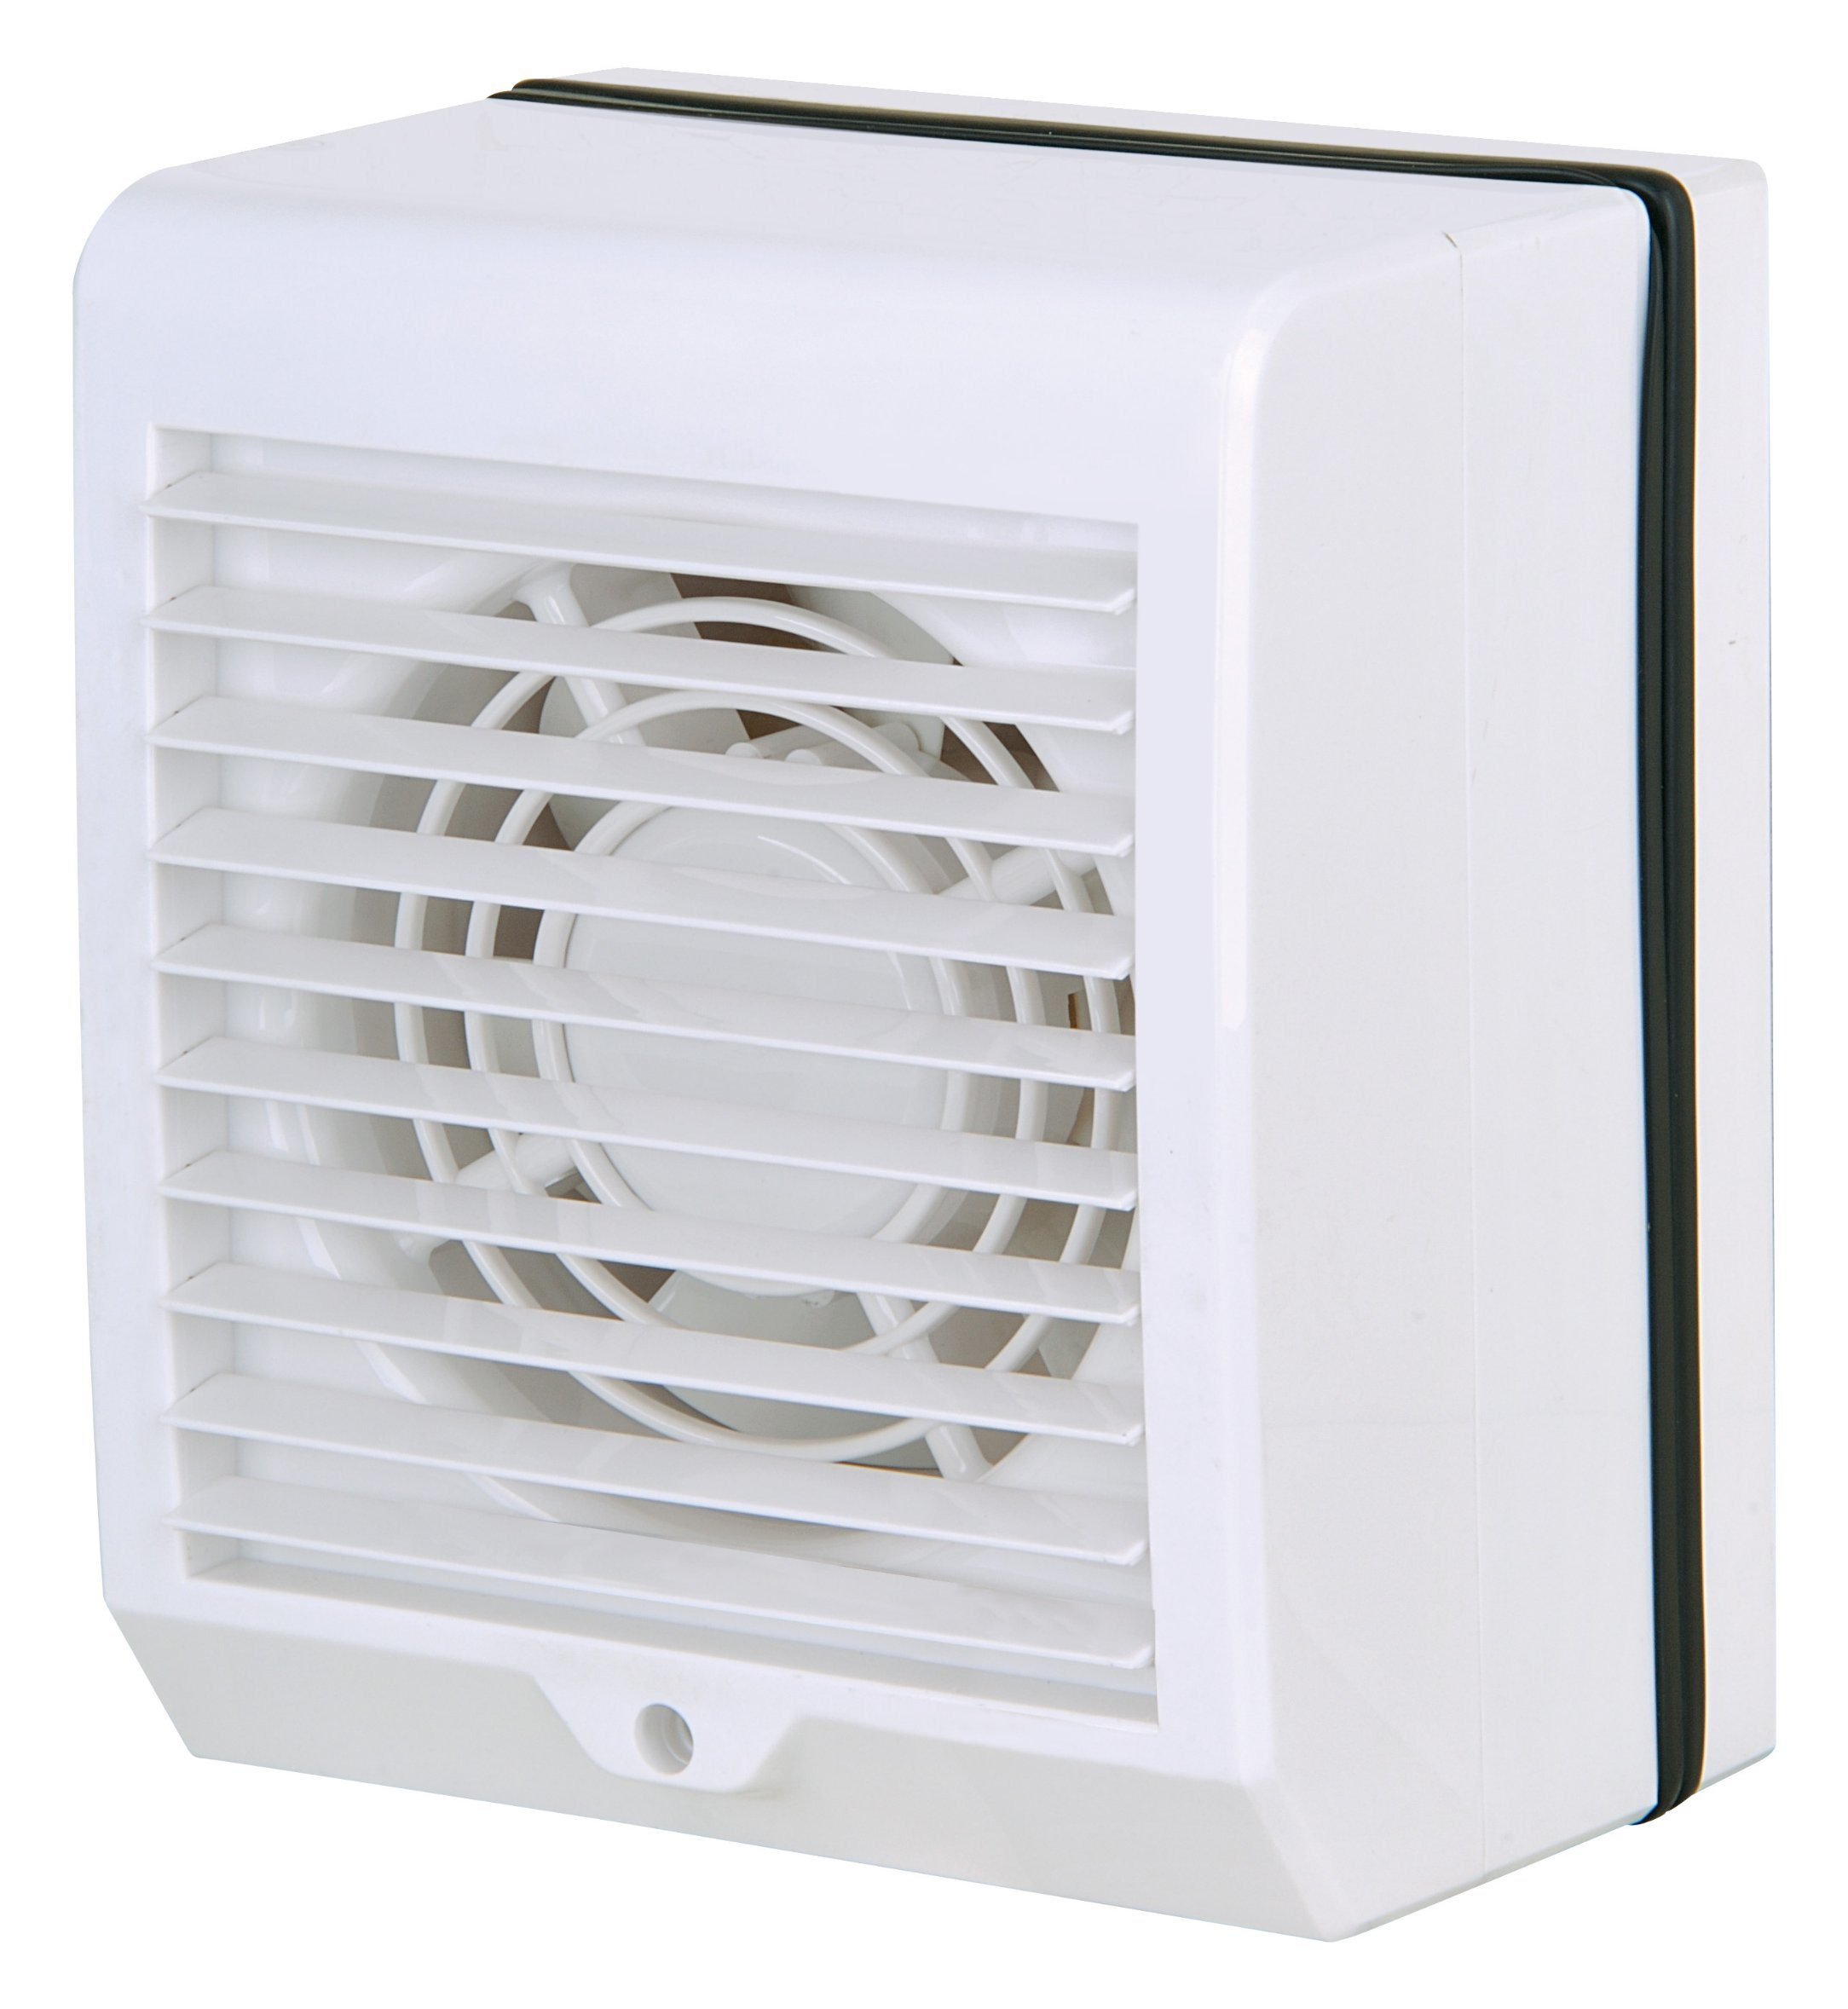 depot for fan cover with exhaust replacement light fans motors heater broan home ideas of led size bathrooms reviews full bathroom installation ceiling